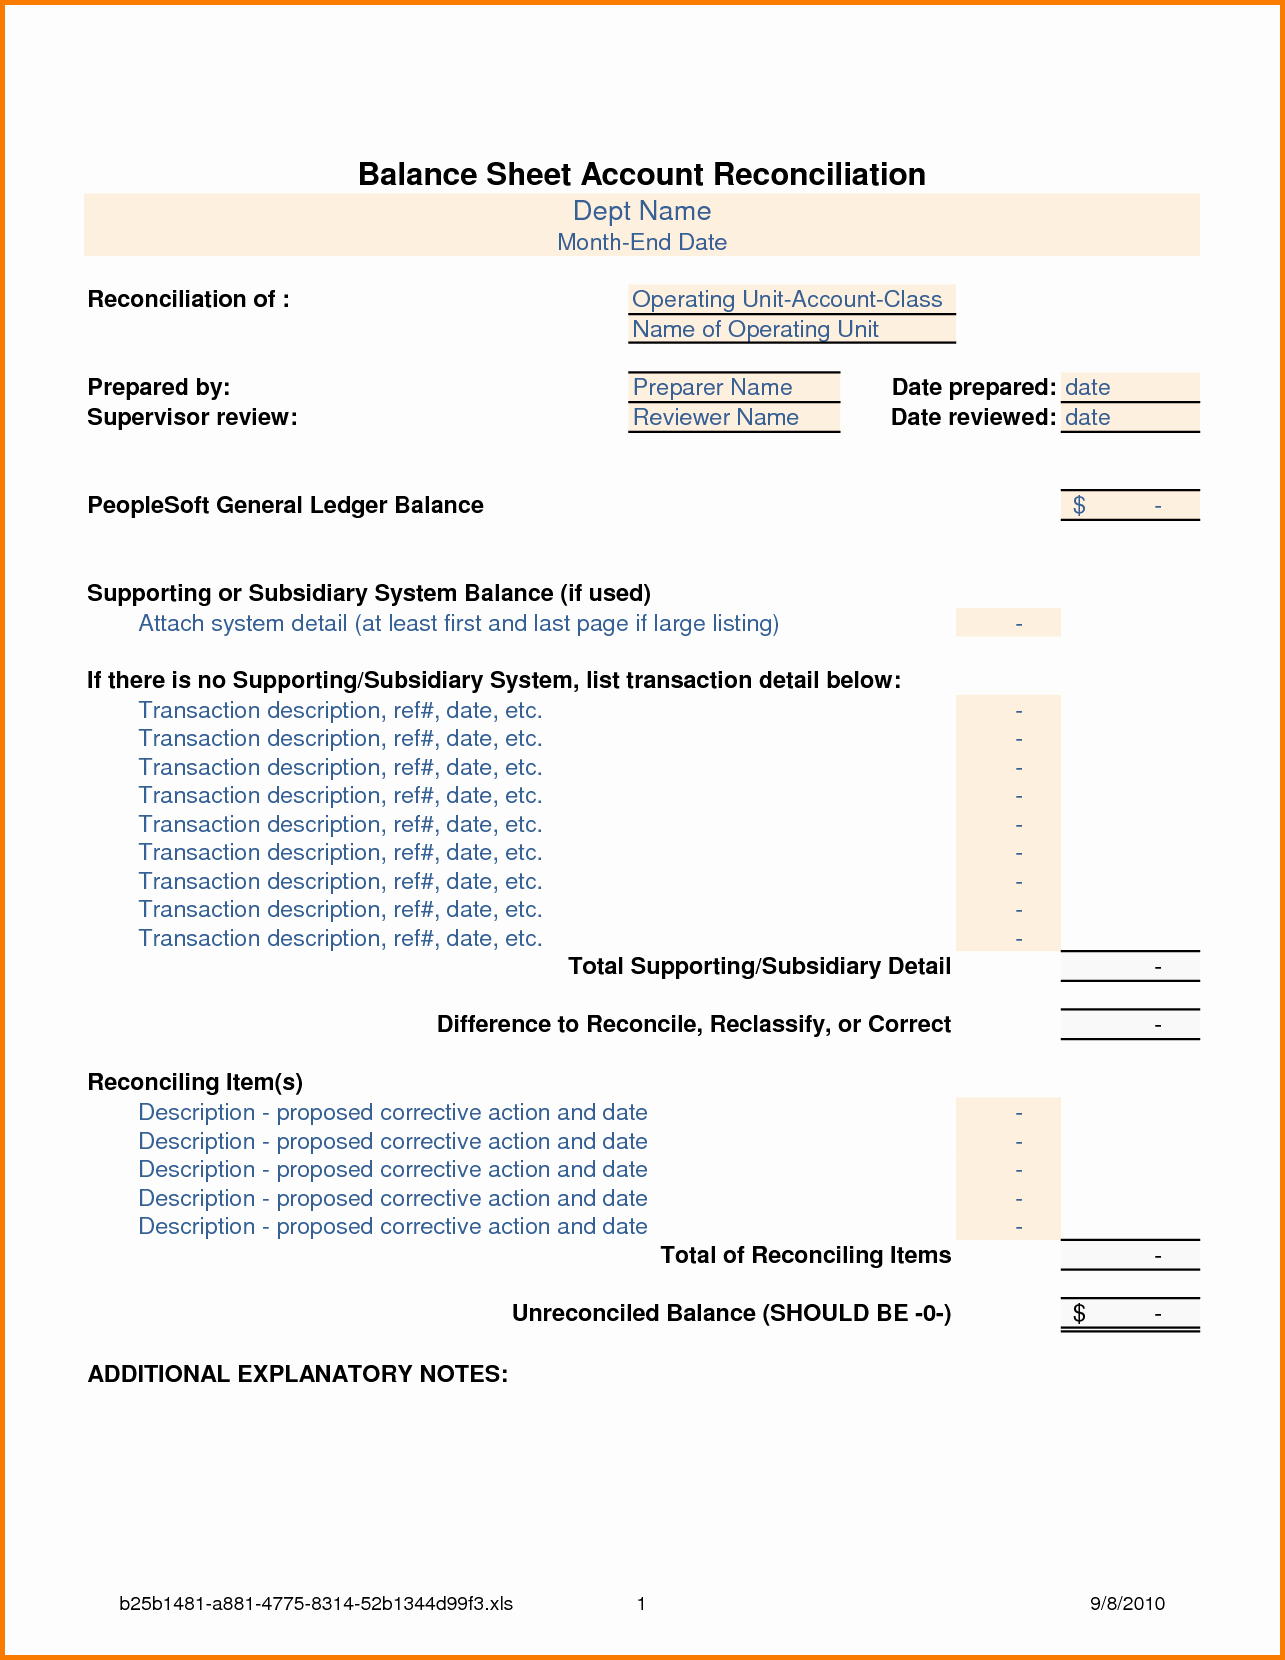 Account Reconciliation Template Excel New Balance Sheet Reconciliation Template